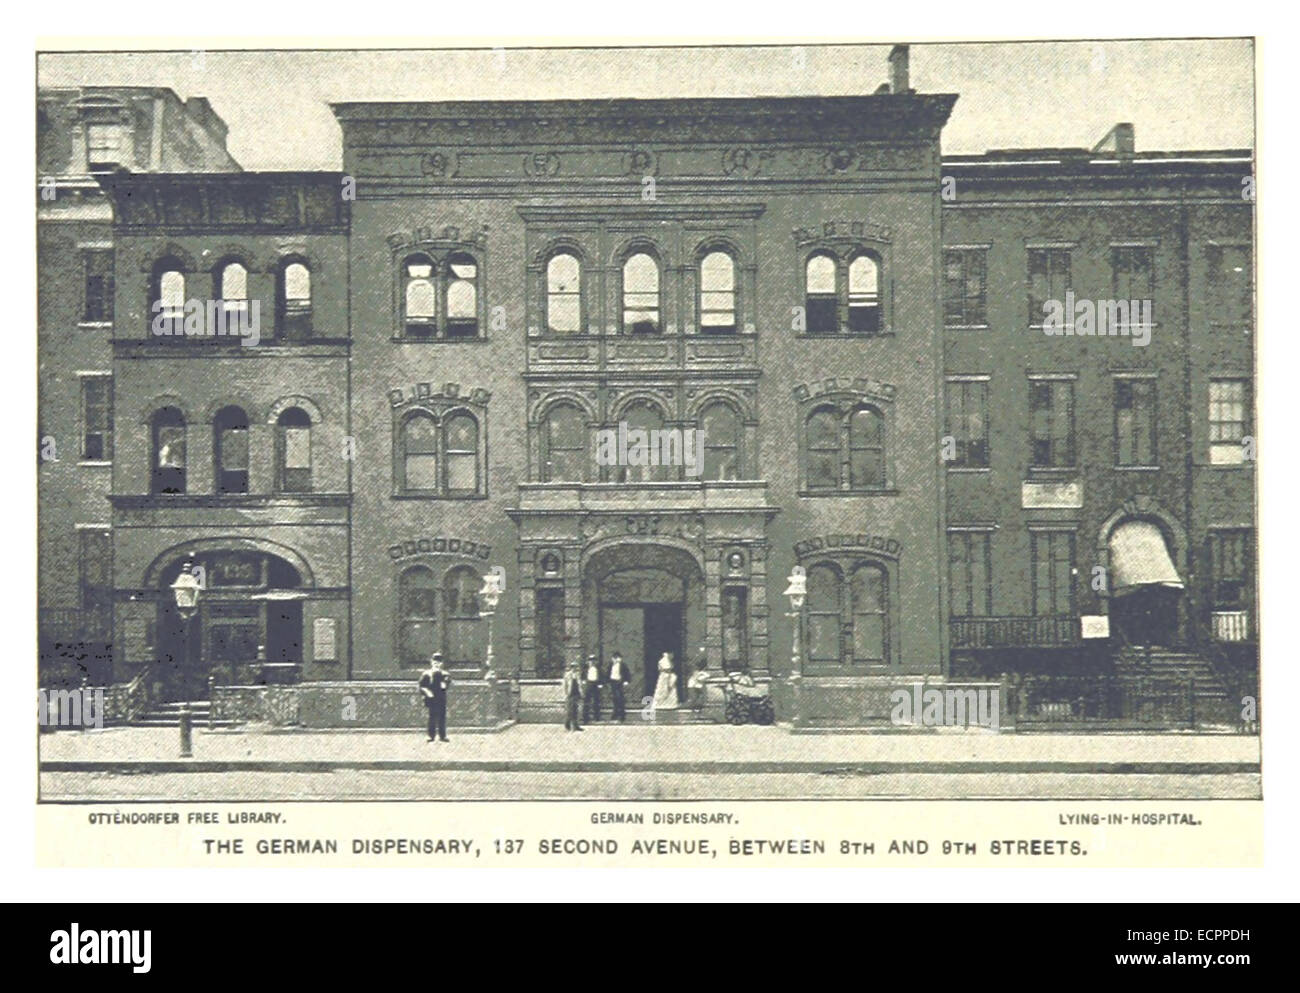 494 THE GERMAN DISPENSARY, 137 SECOND AVENUE, BETWEEN 8TH AND 9TH STREETS - Stock Image